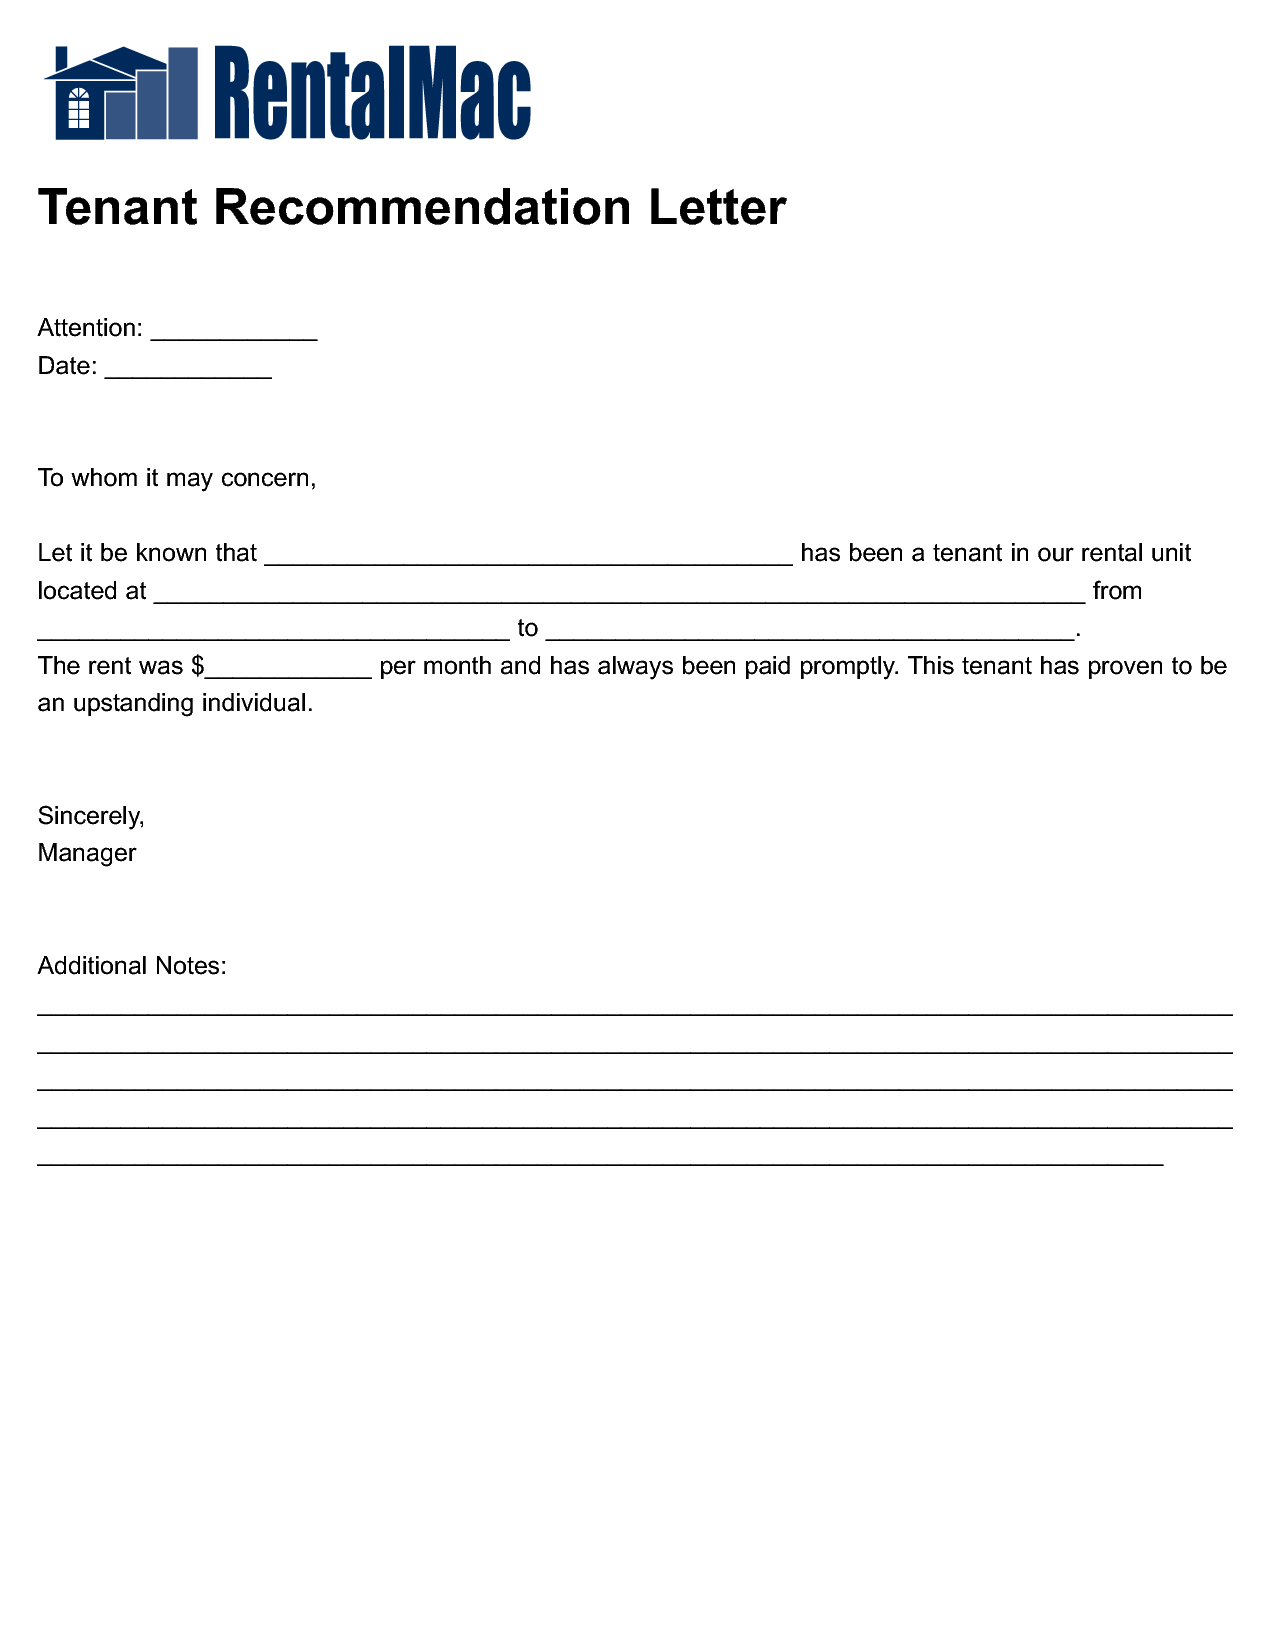 Free Rental Reference Letter Template - Housing Reference Letter Image Collections Letter format formal Sample